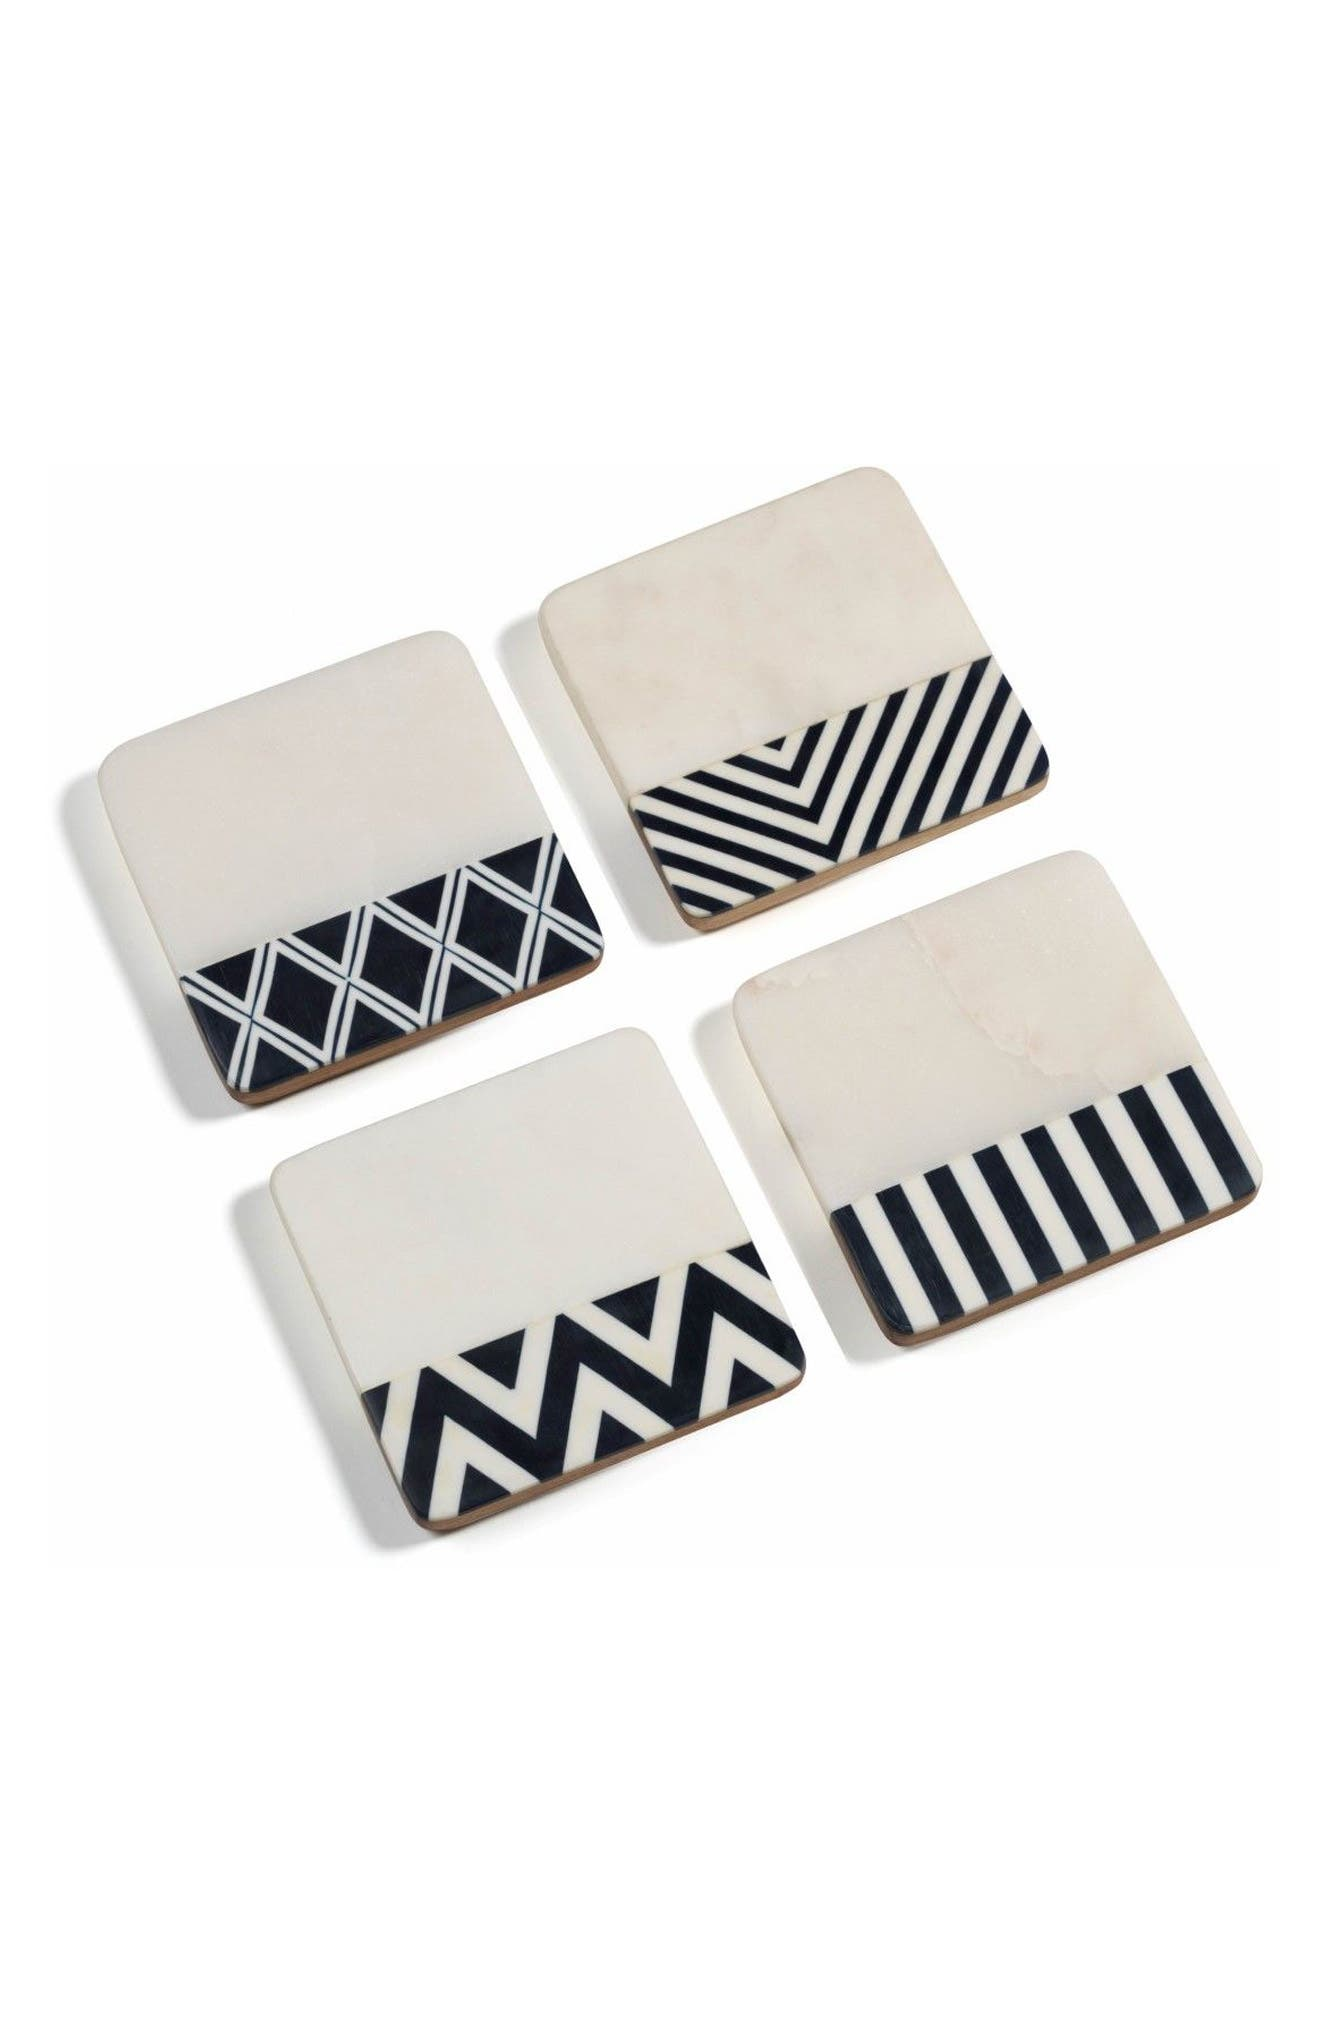 Alternate Image 1 Selected - Zodax Marine Set of 4 Wood & Marble Coasters